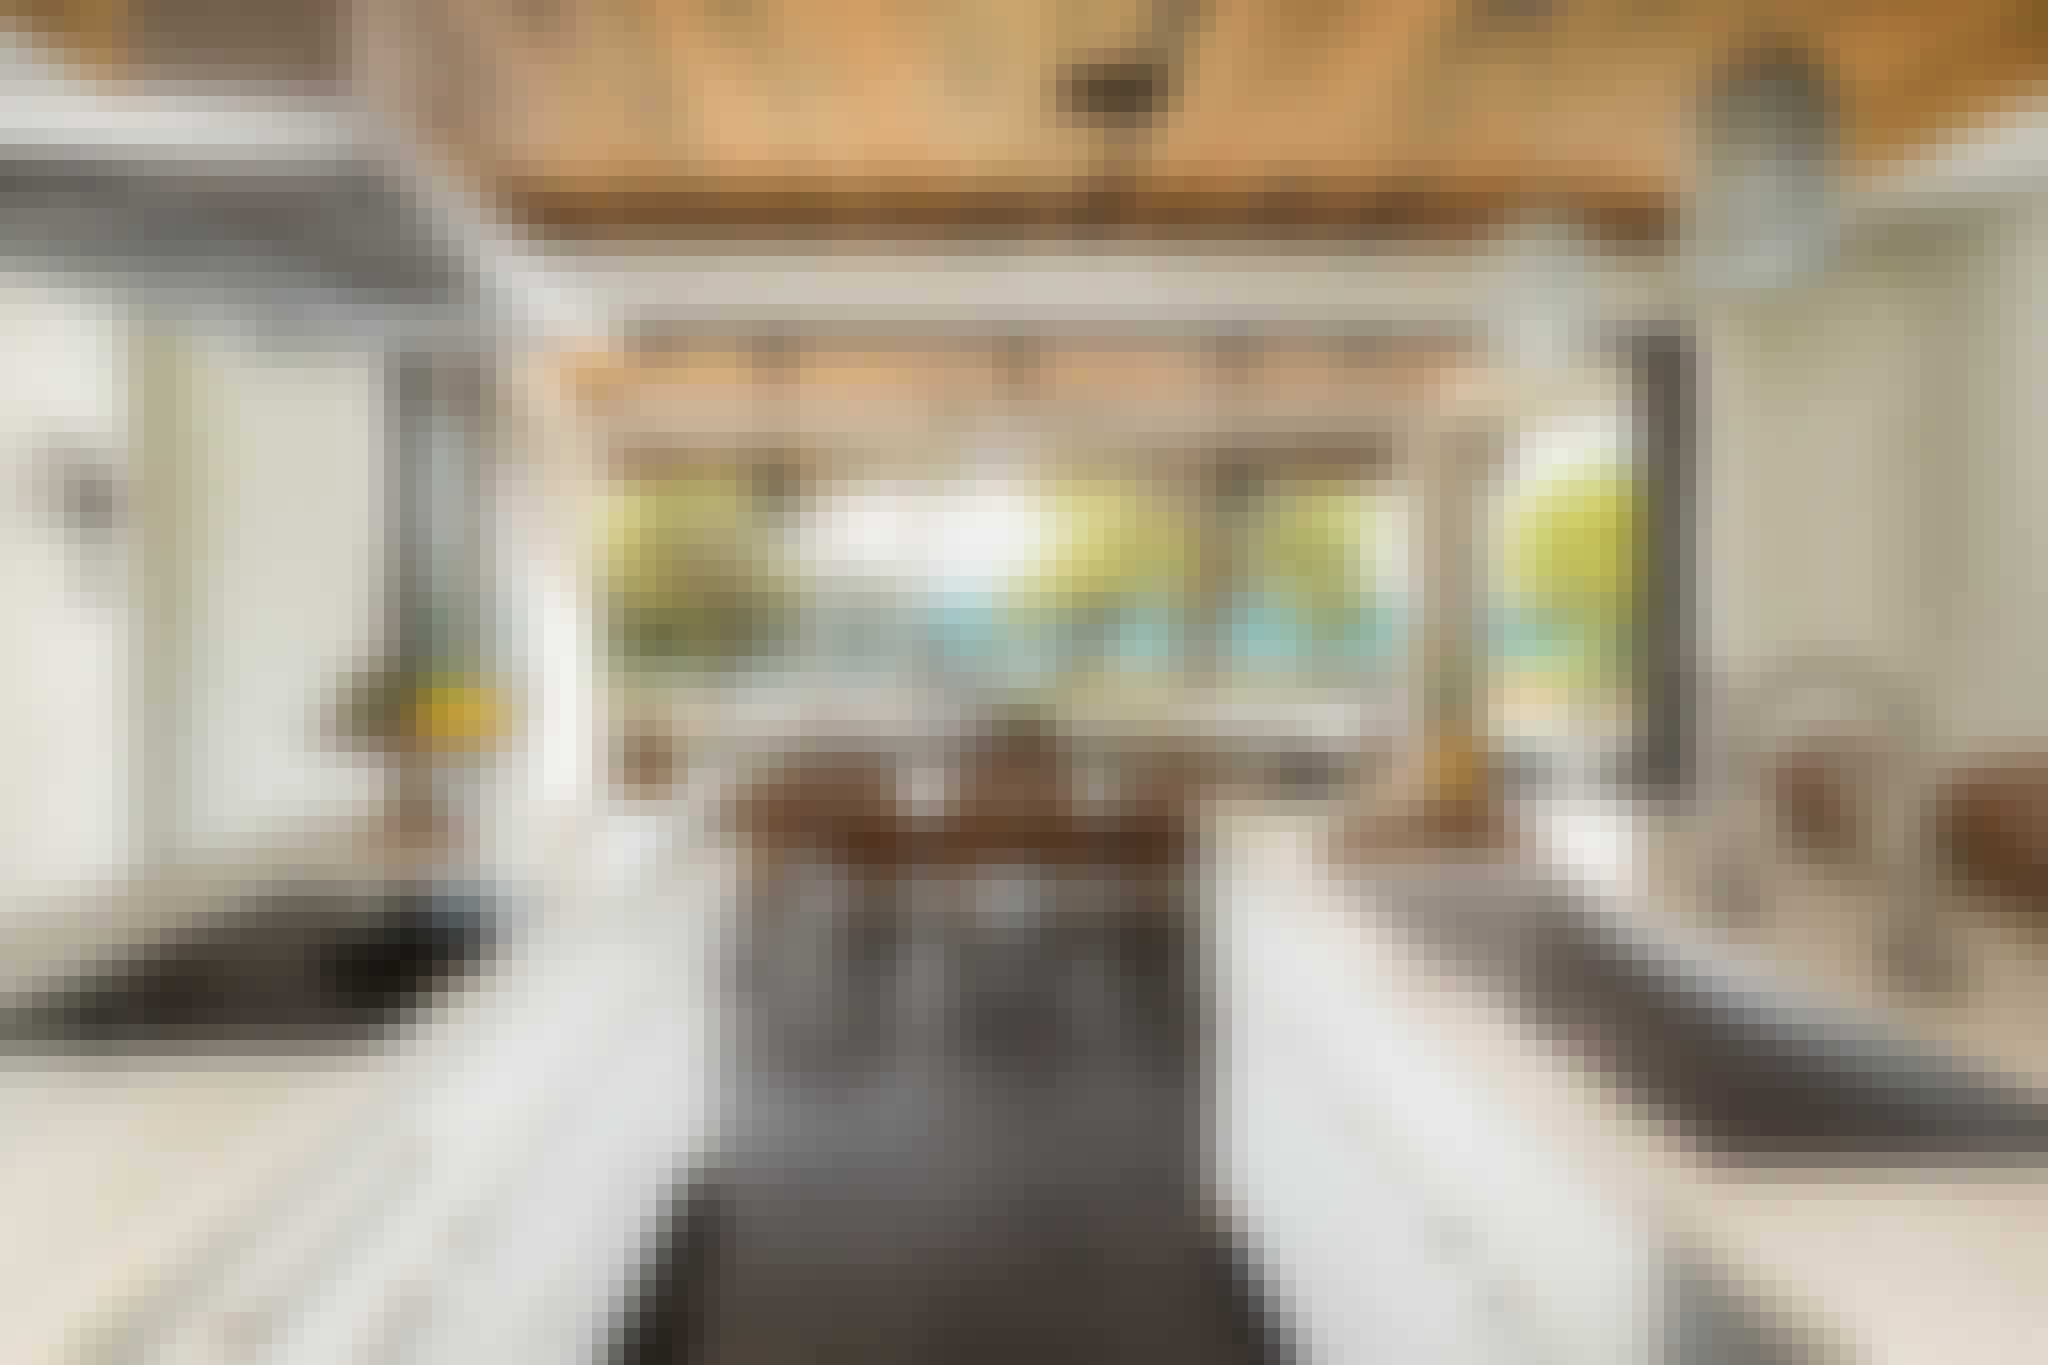 folding glass wall systems in hawaii vacation home